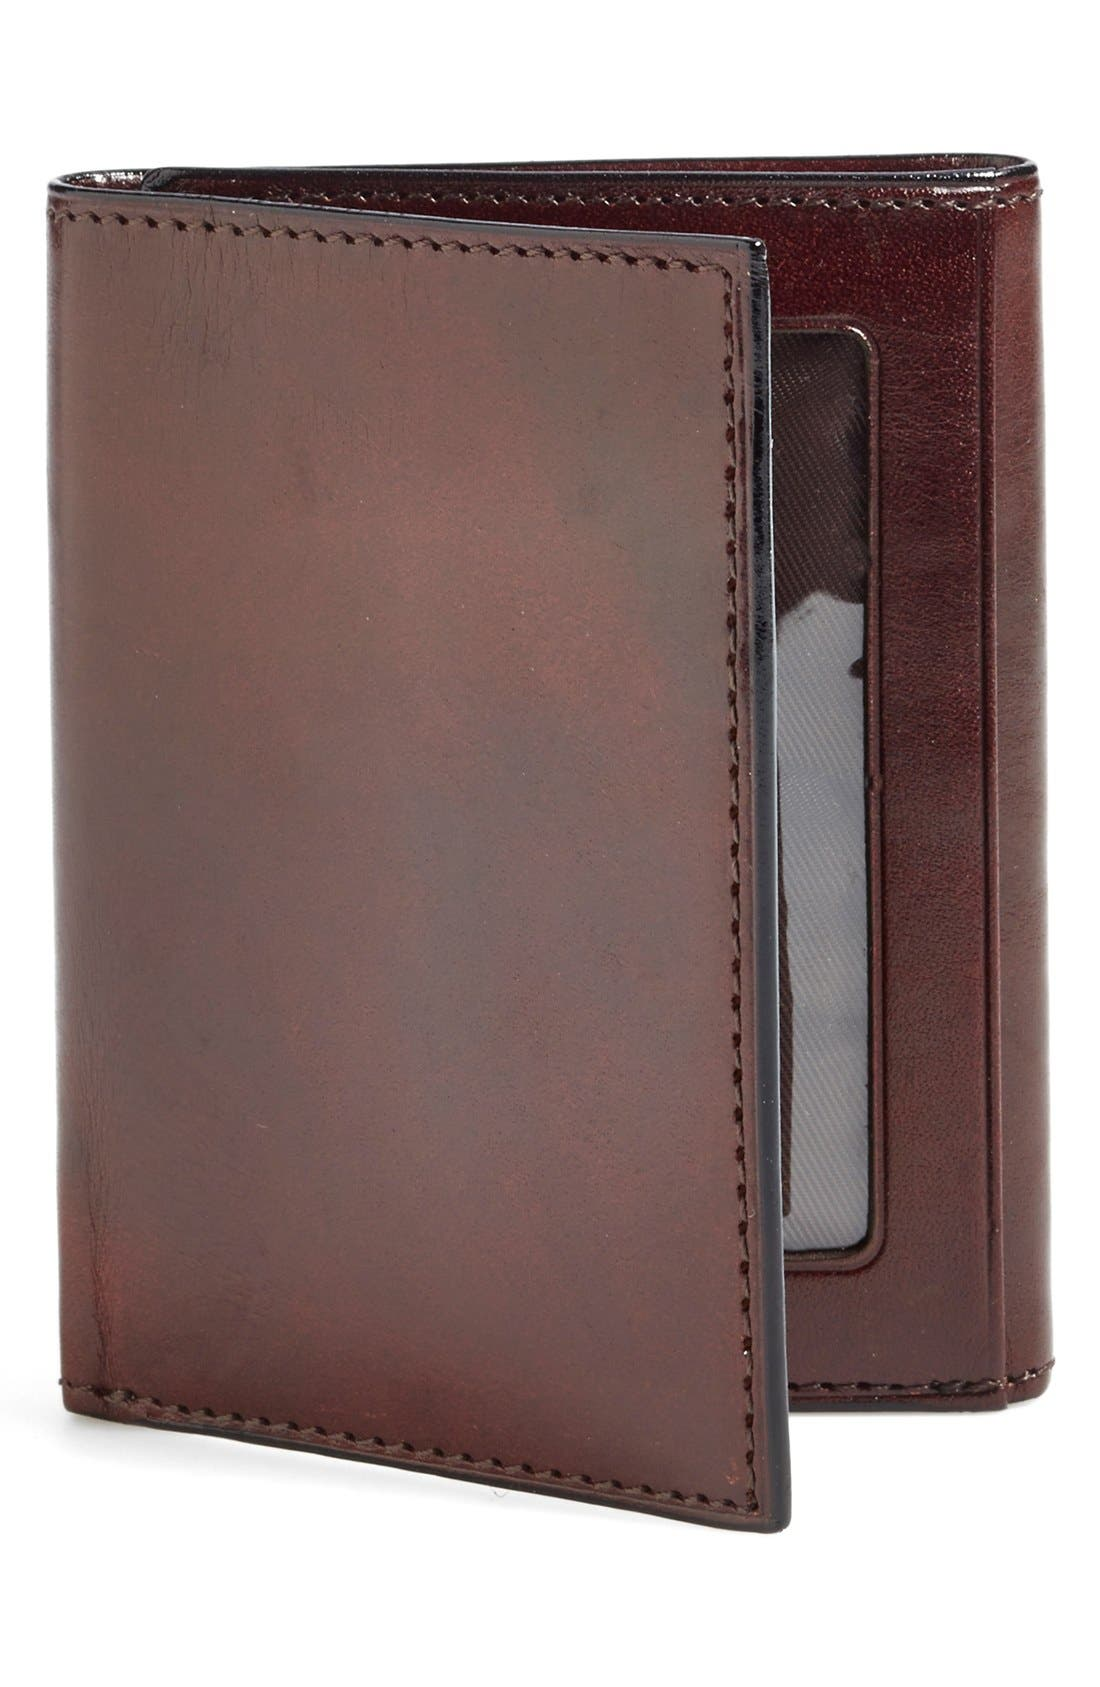 'Old Leather' Trifold Wallet